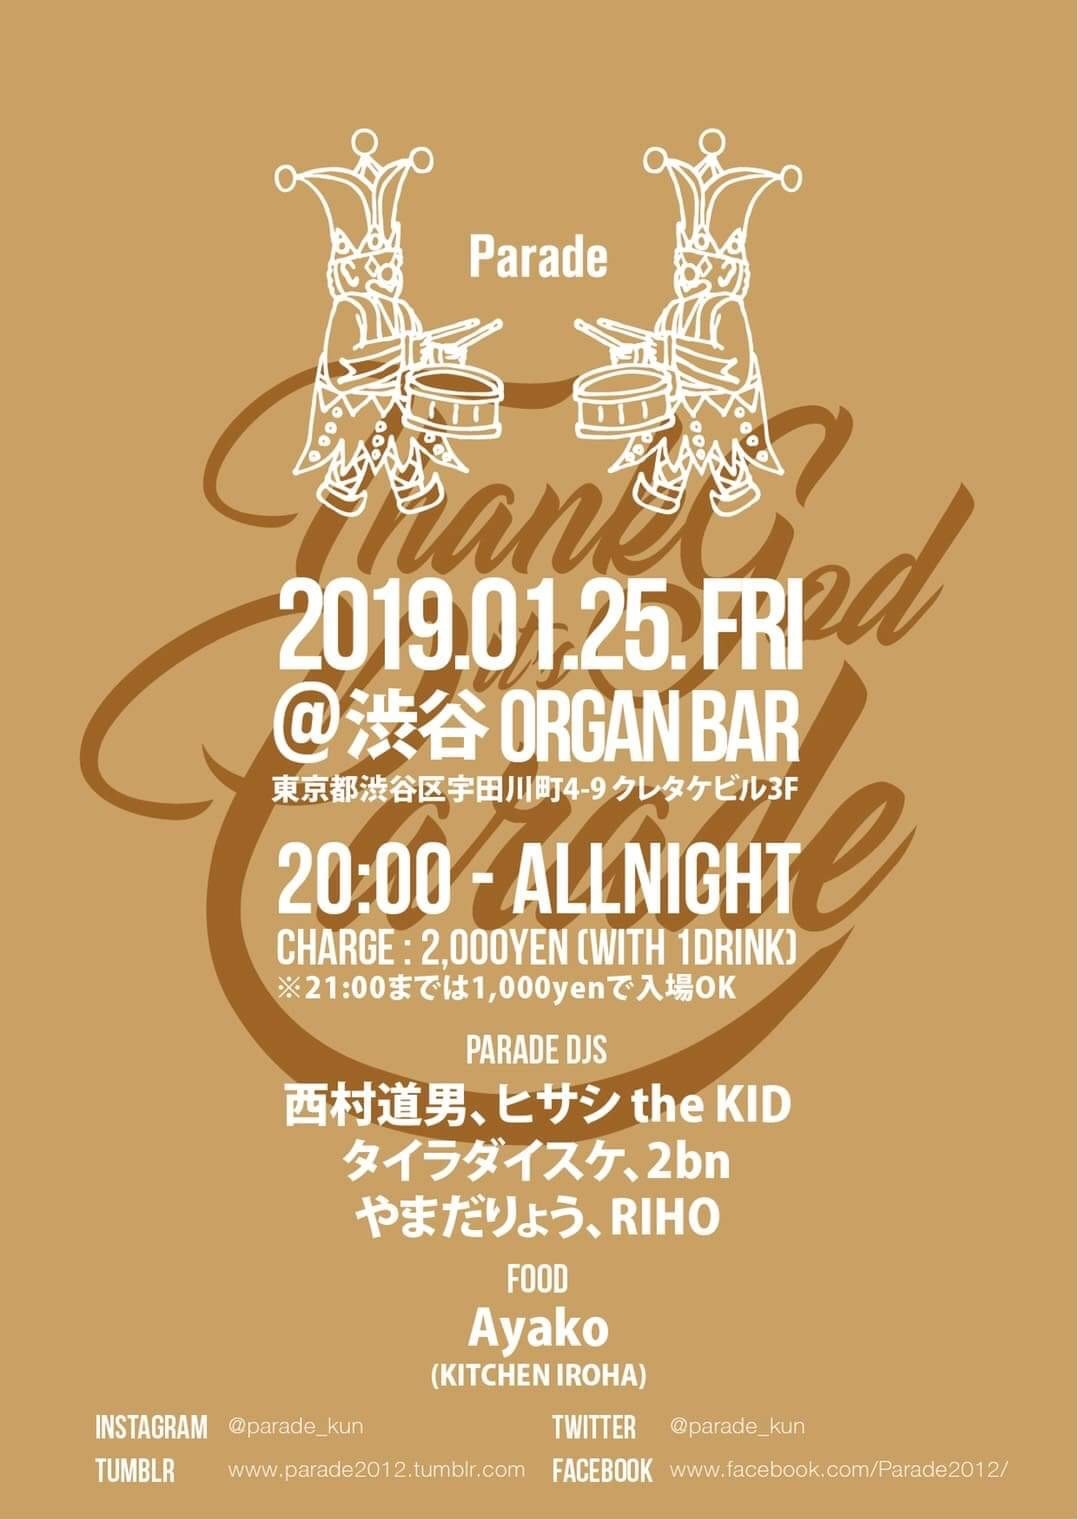 1/25 (FRI) 「Parade 」@ 渋谷 Organ Bar_e0153779_11232409.jpeg